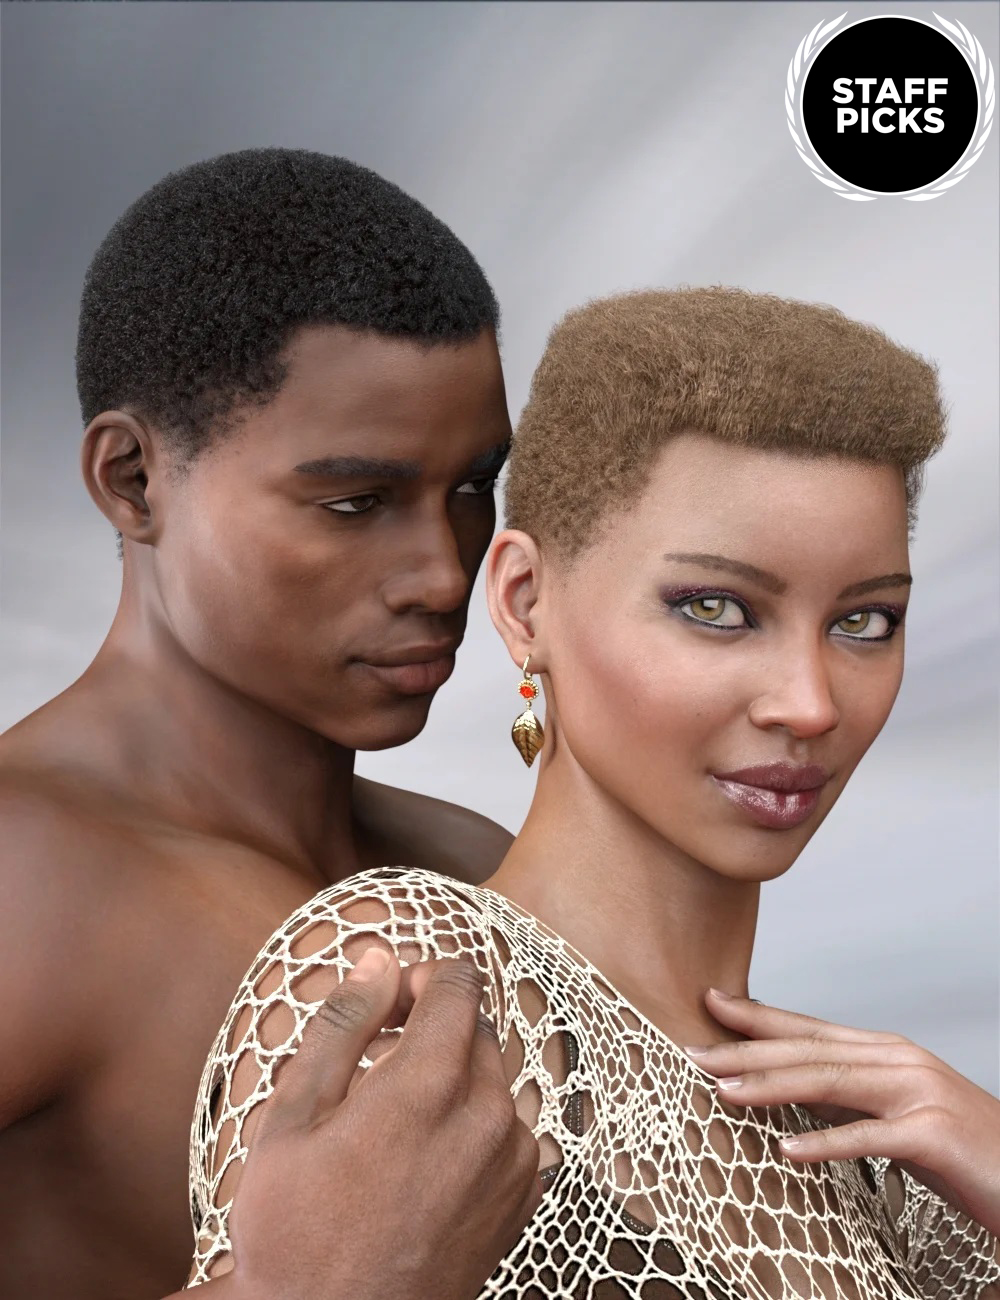 Short Afro Hair for Genesis 3 and 8 by: RedzStudio, 3D Models by Daz 3D